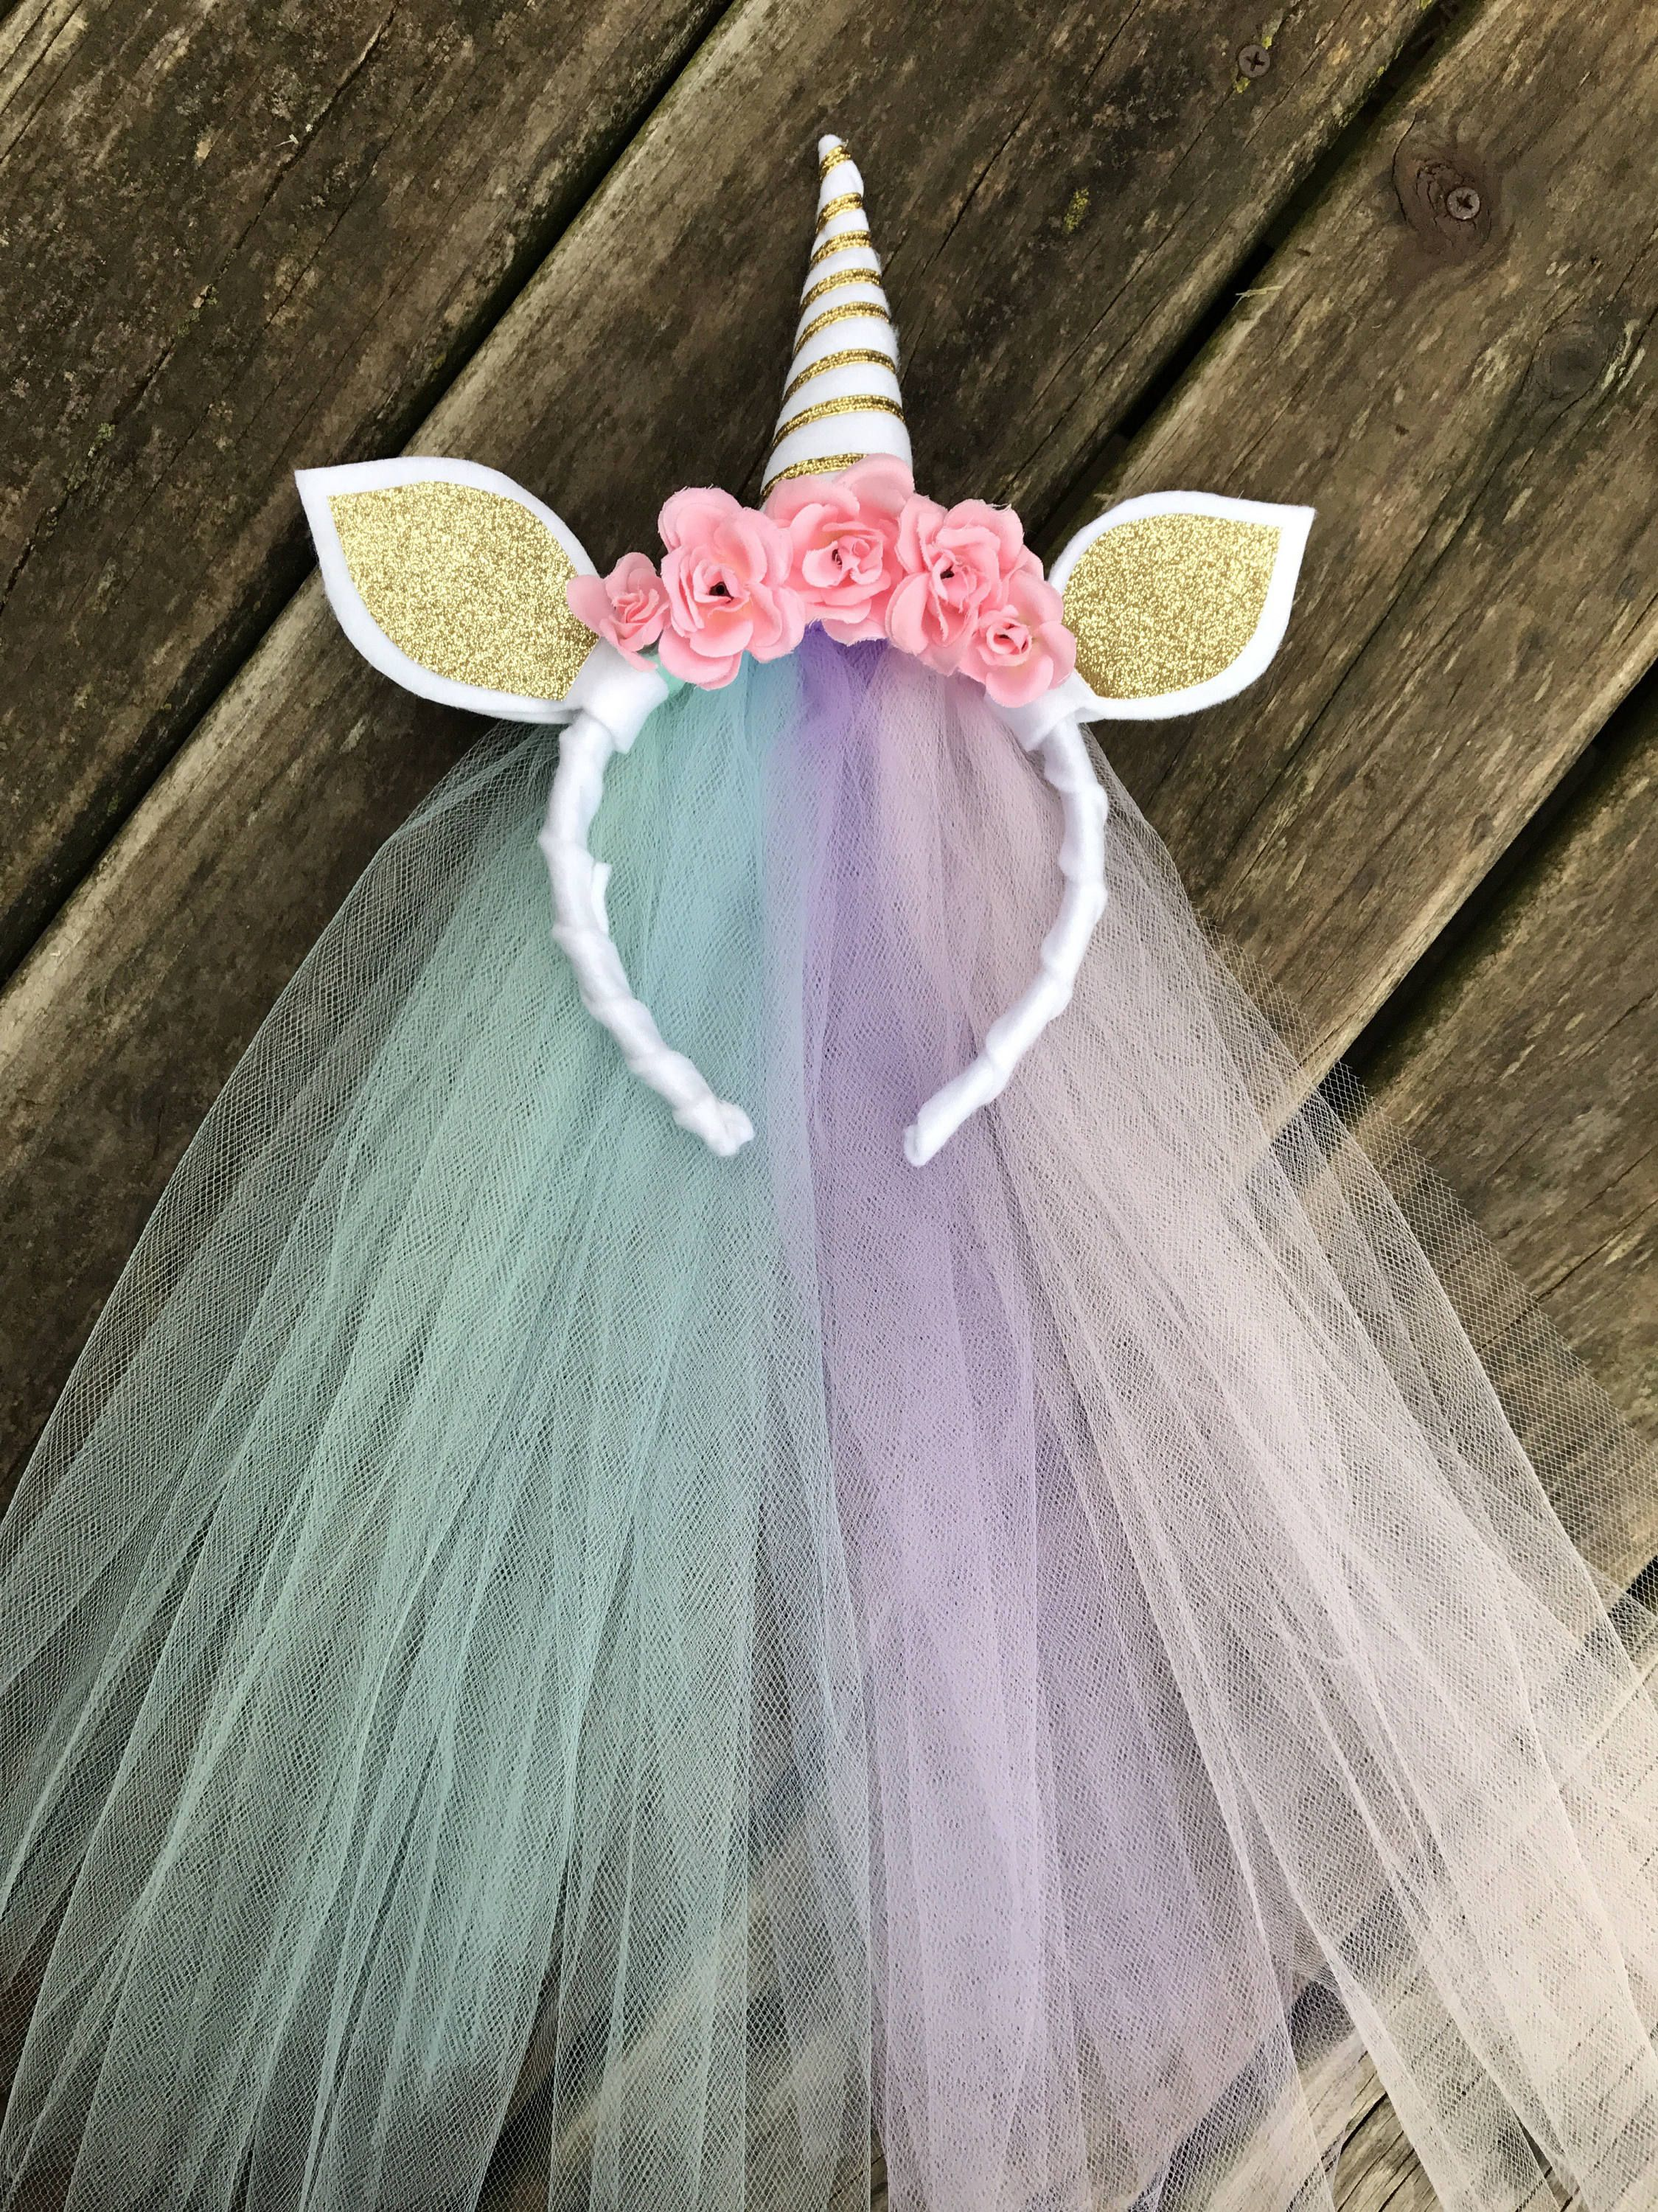 Pin by Tasha Hock on Las vegas | Pinterest | Unicorn headband, Wool ...